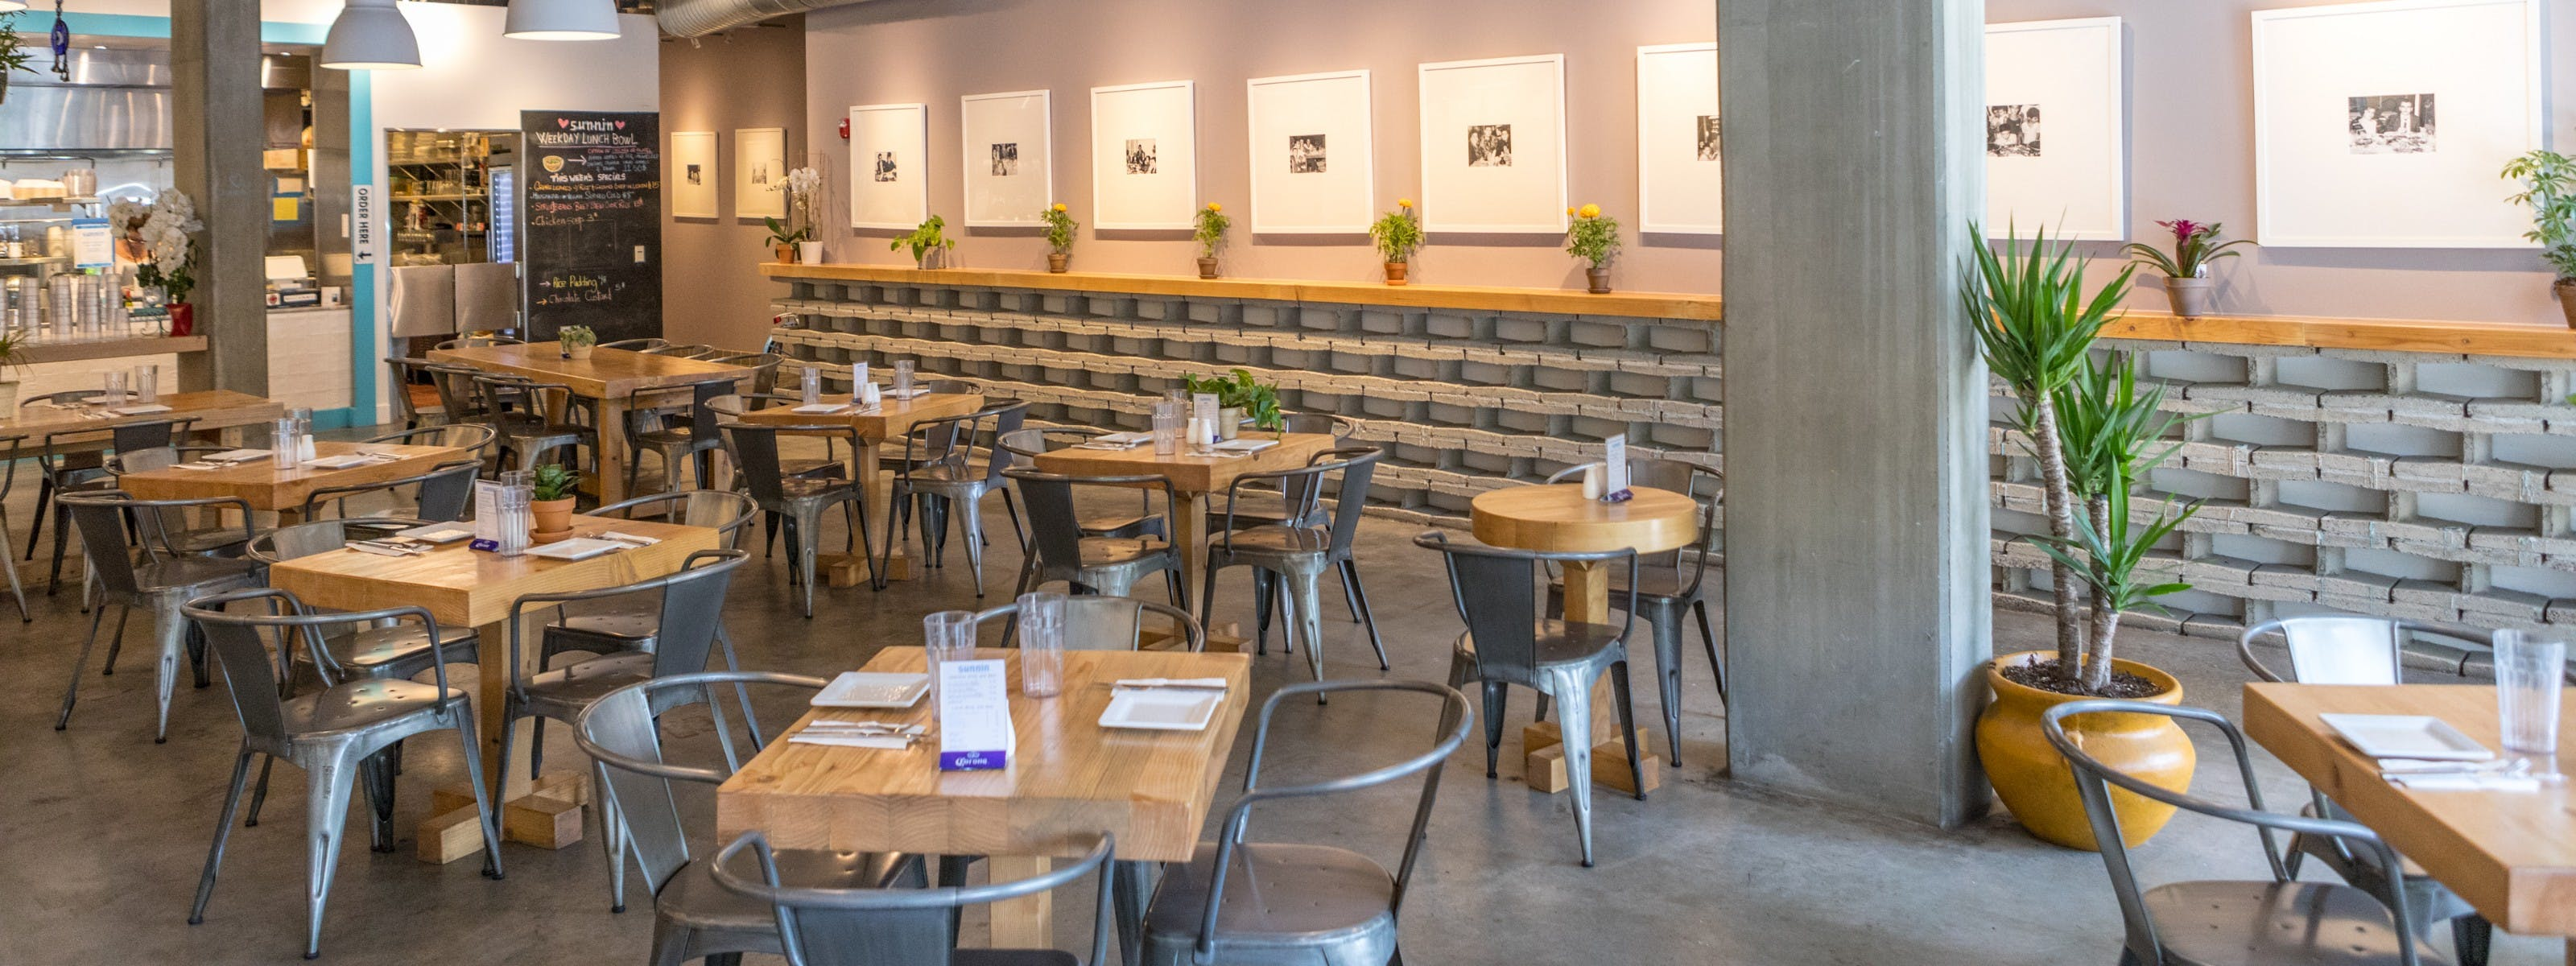 Where To Have Dinner For Around 30 In Santa Monica Santa Monica Los Angeles The Infatuation